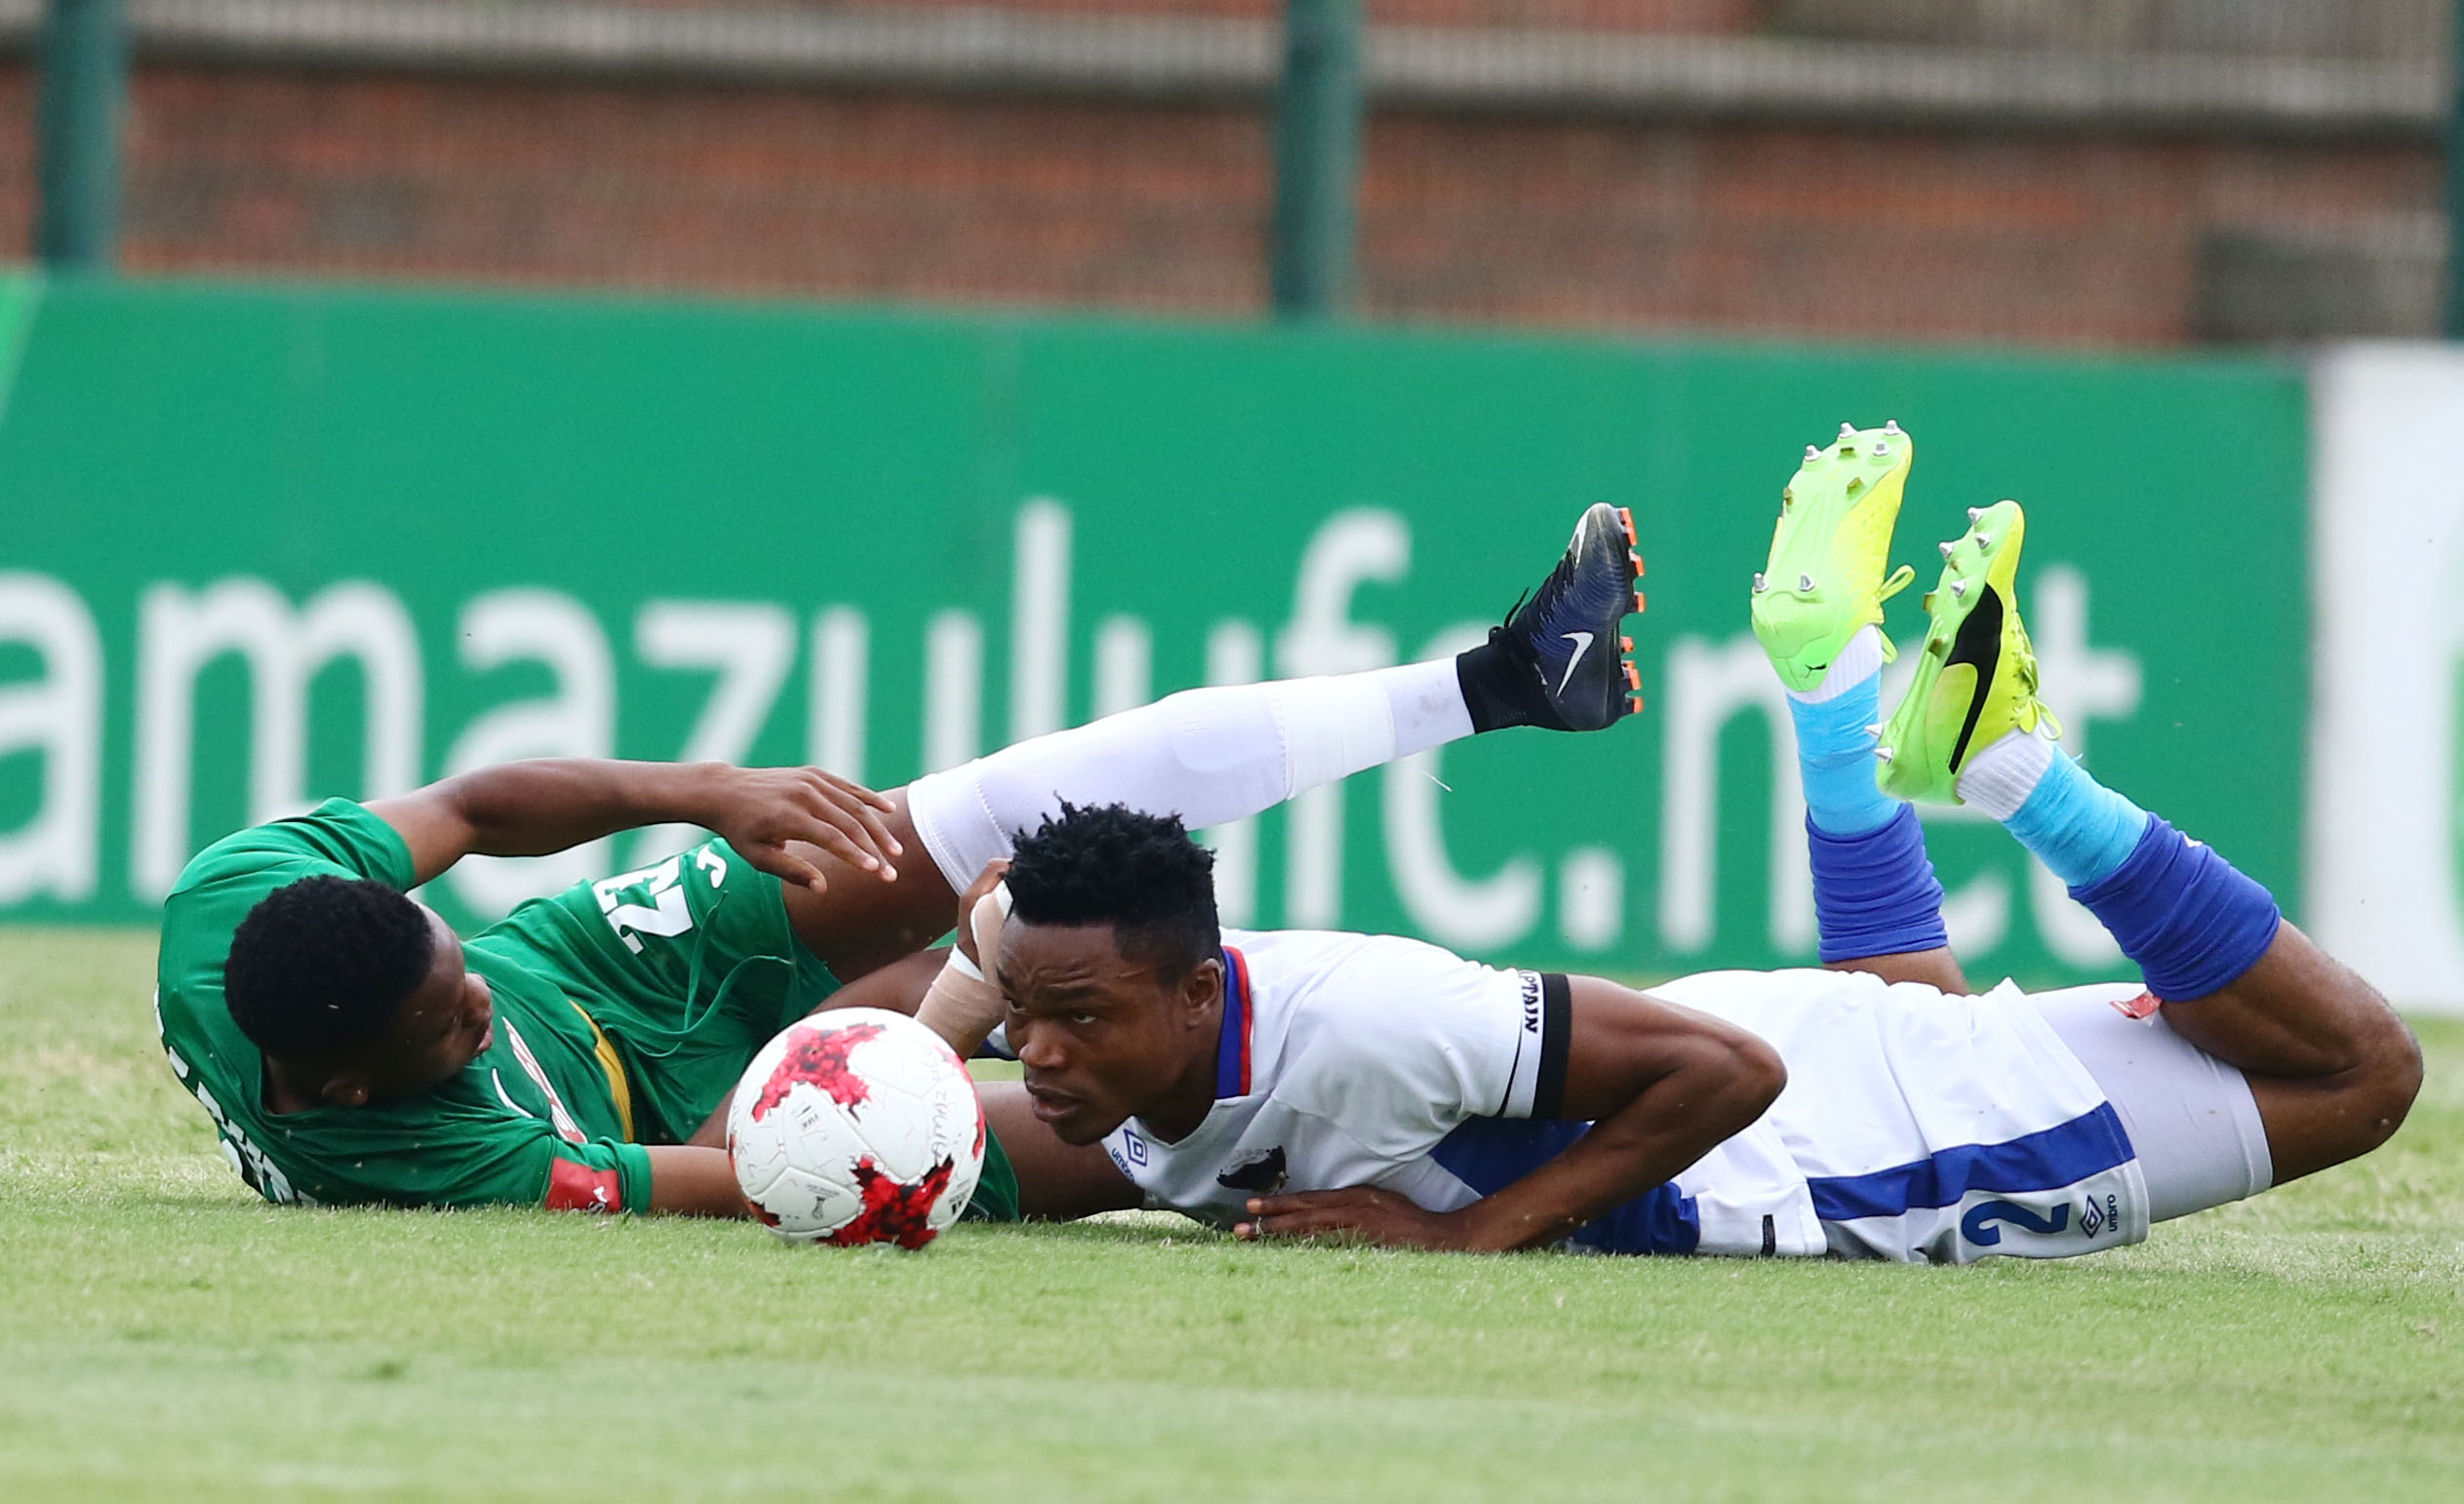 DURBAN, SOUTH AFRICA - JANUARY 07: Ovidy Karuru of Amazulu and James Okwuosa of Chippa United battle for possession during the Absa Premiership match between AmaZulu FC and Chippa United at King Zwelithini Stadium on January 07, 2018 in Durban, South Africa. (Photo by Anesh Debiky/Gallo Images)